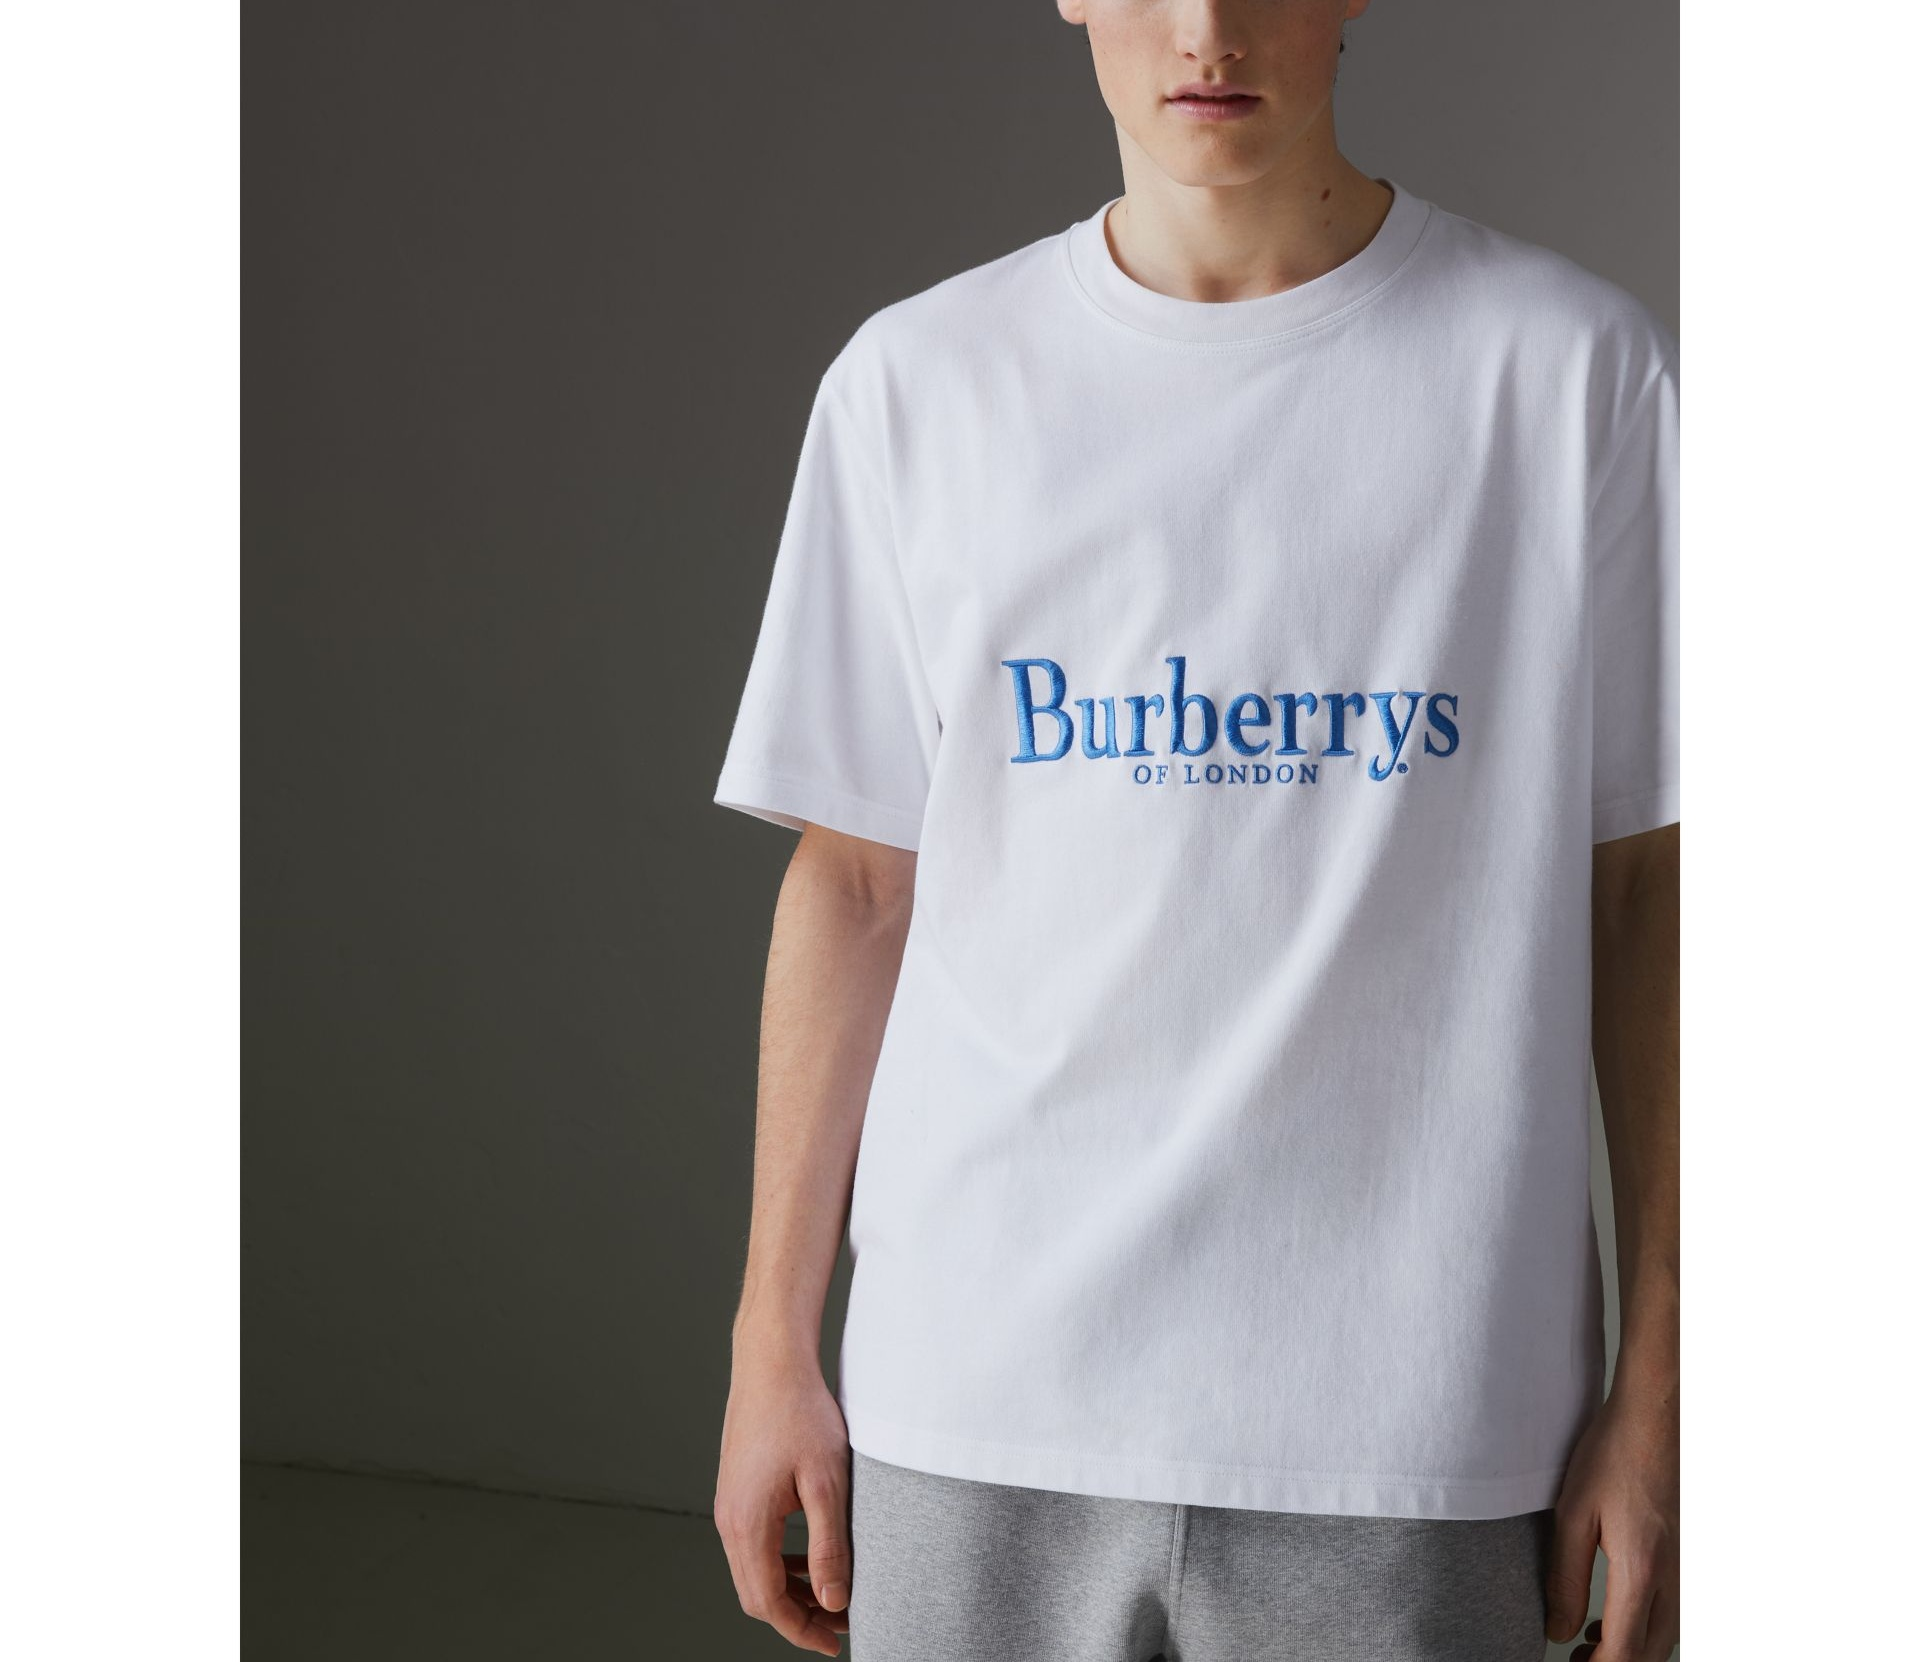 1ce382fa5 Reissued Cotton T-shirt. £180. Sorry, this item has just gone out of stock.  Our stylists will find you something similar if you sign up for Thread.